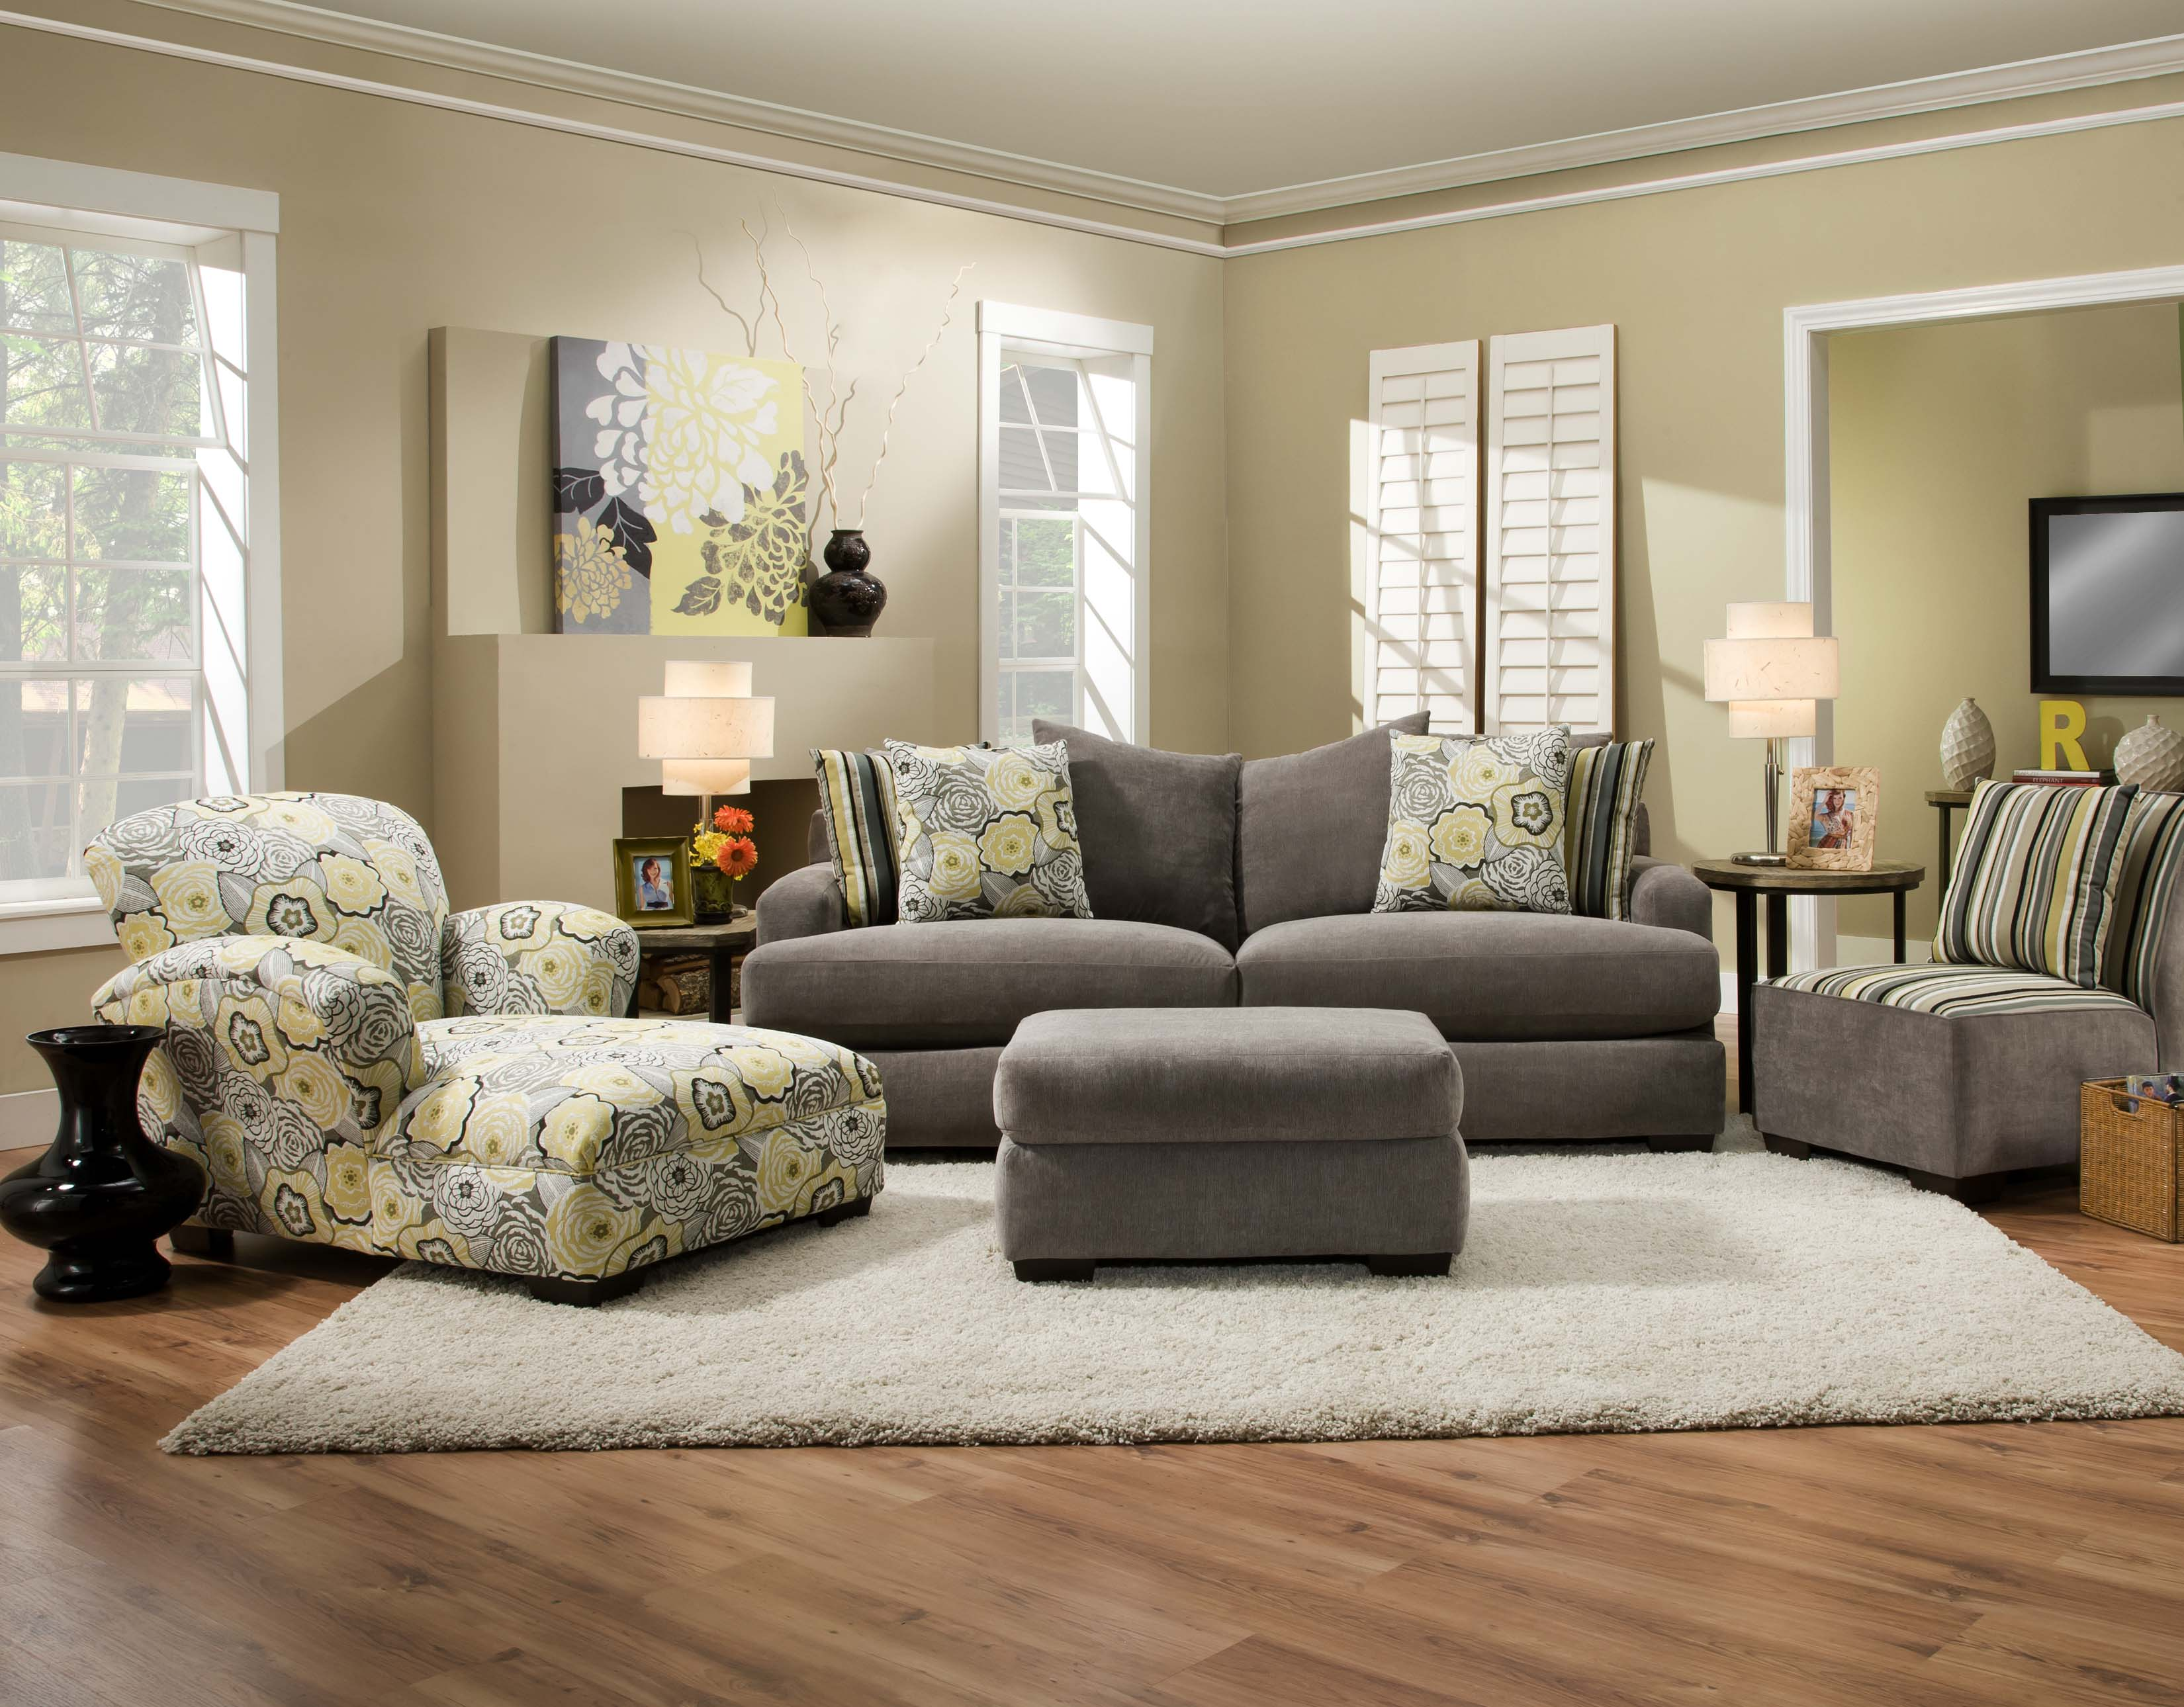 Visit our Furniture Store in Lincoln NE | Household ...